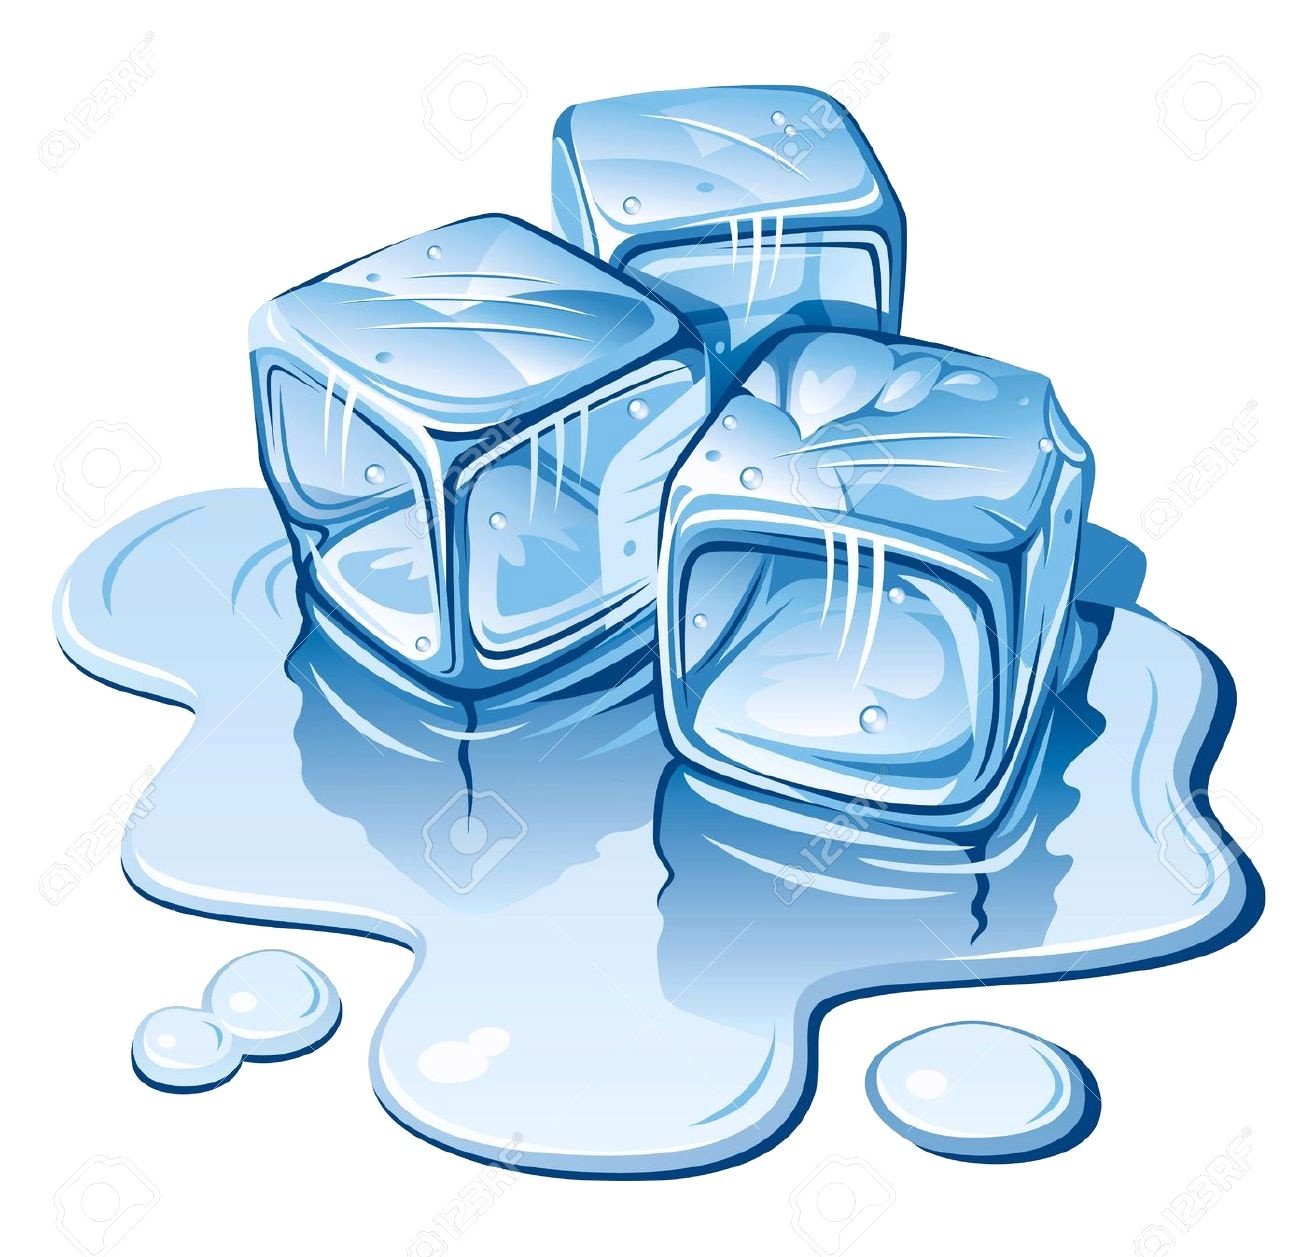 Ice cube clipart 8 » Clipart Station.